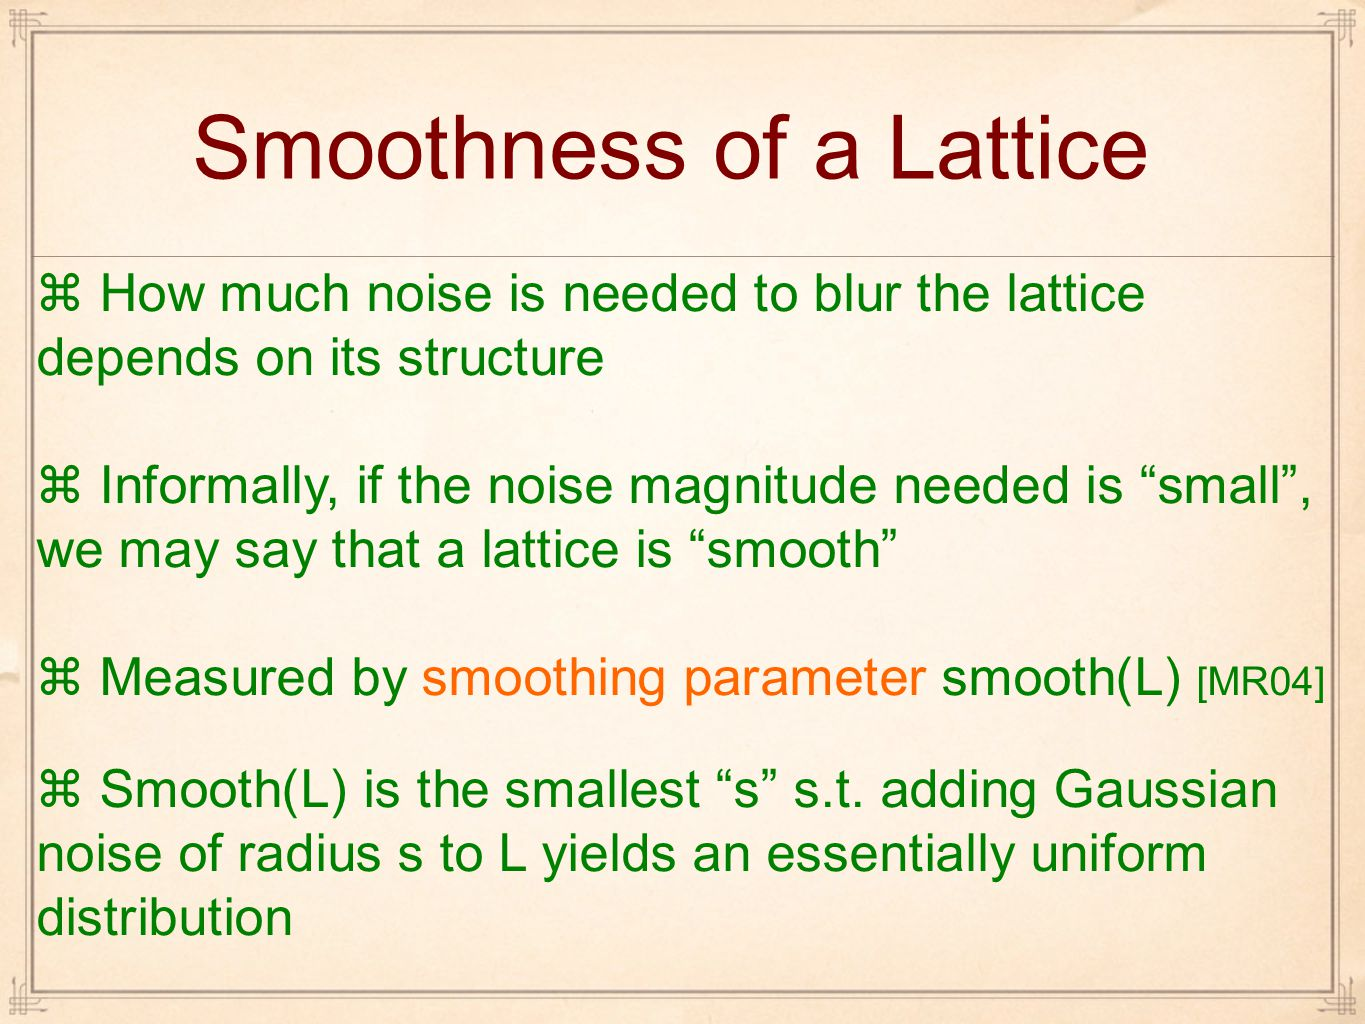 Smoothness of a Lattice  How much noise is needed to blur the lattice depends on its structure  Informally, if the noise magnitude needed is small , we may say that a lattice is smooth  Measured by smoothing parameter smooth(L) [MR04]  Smooth(L) is the smallest s s.t.